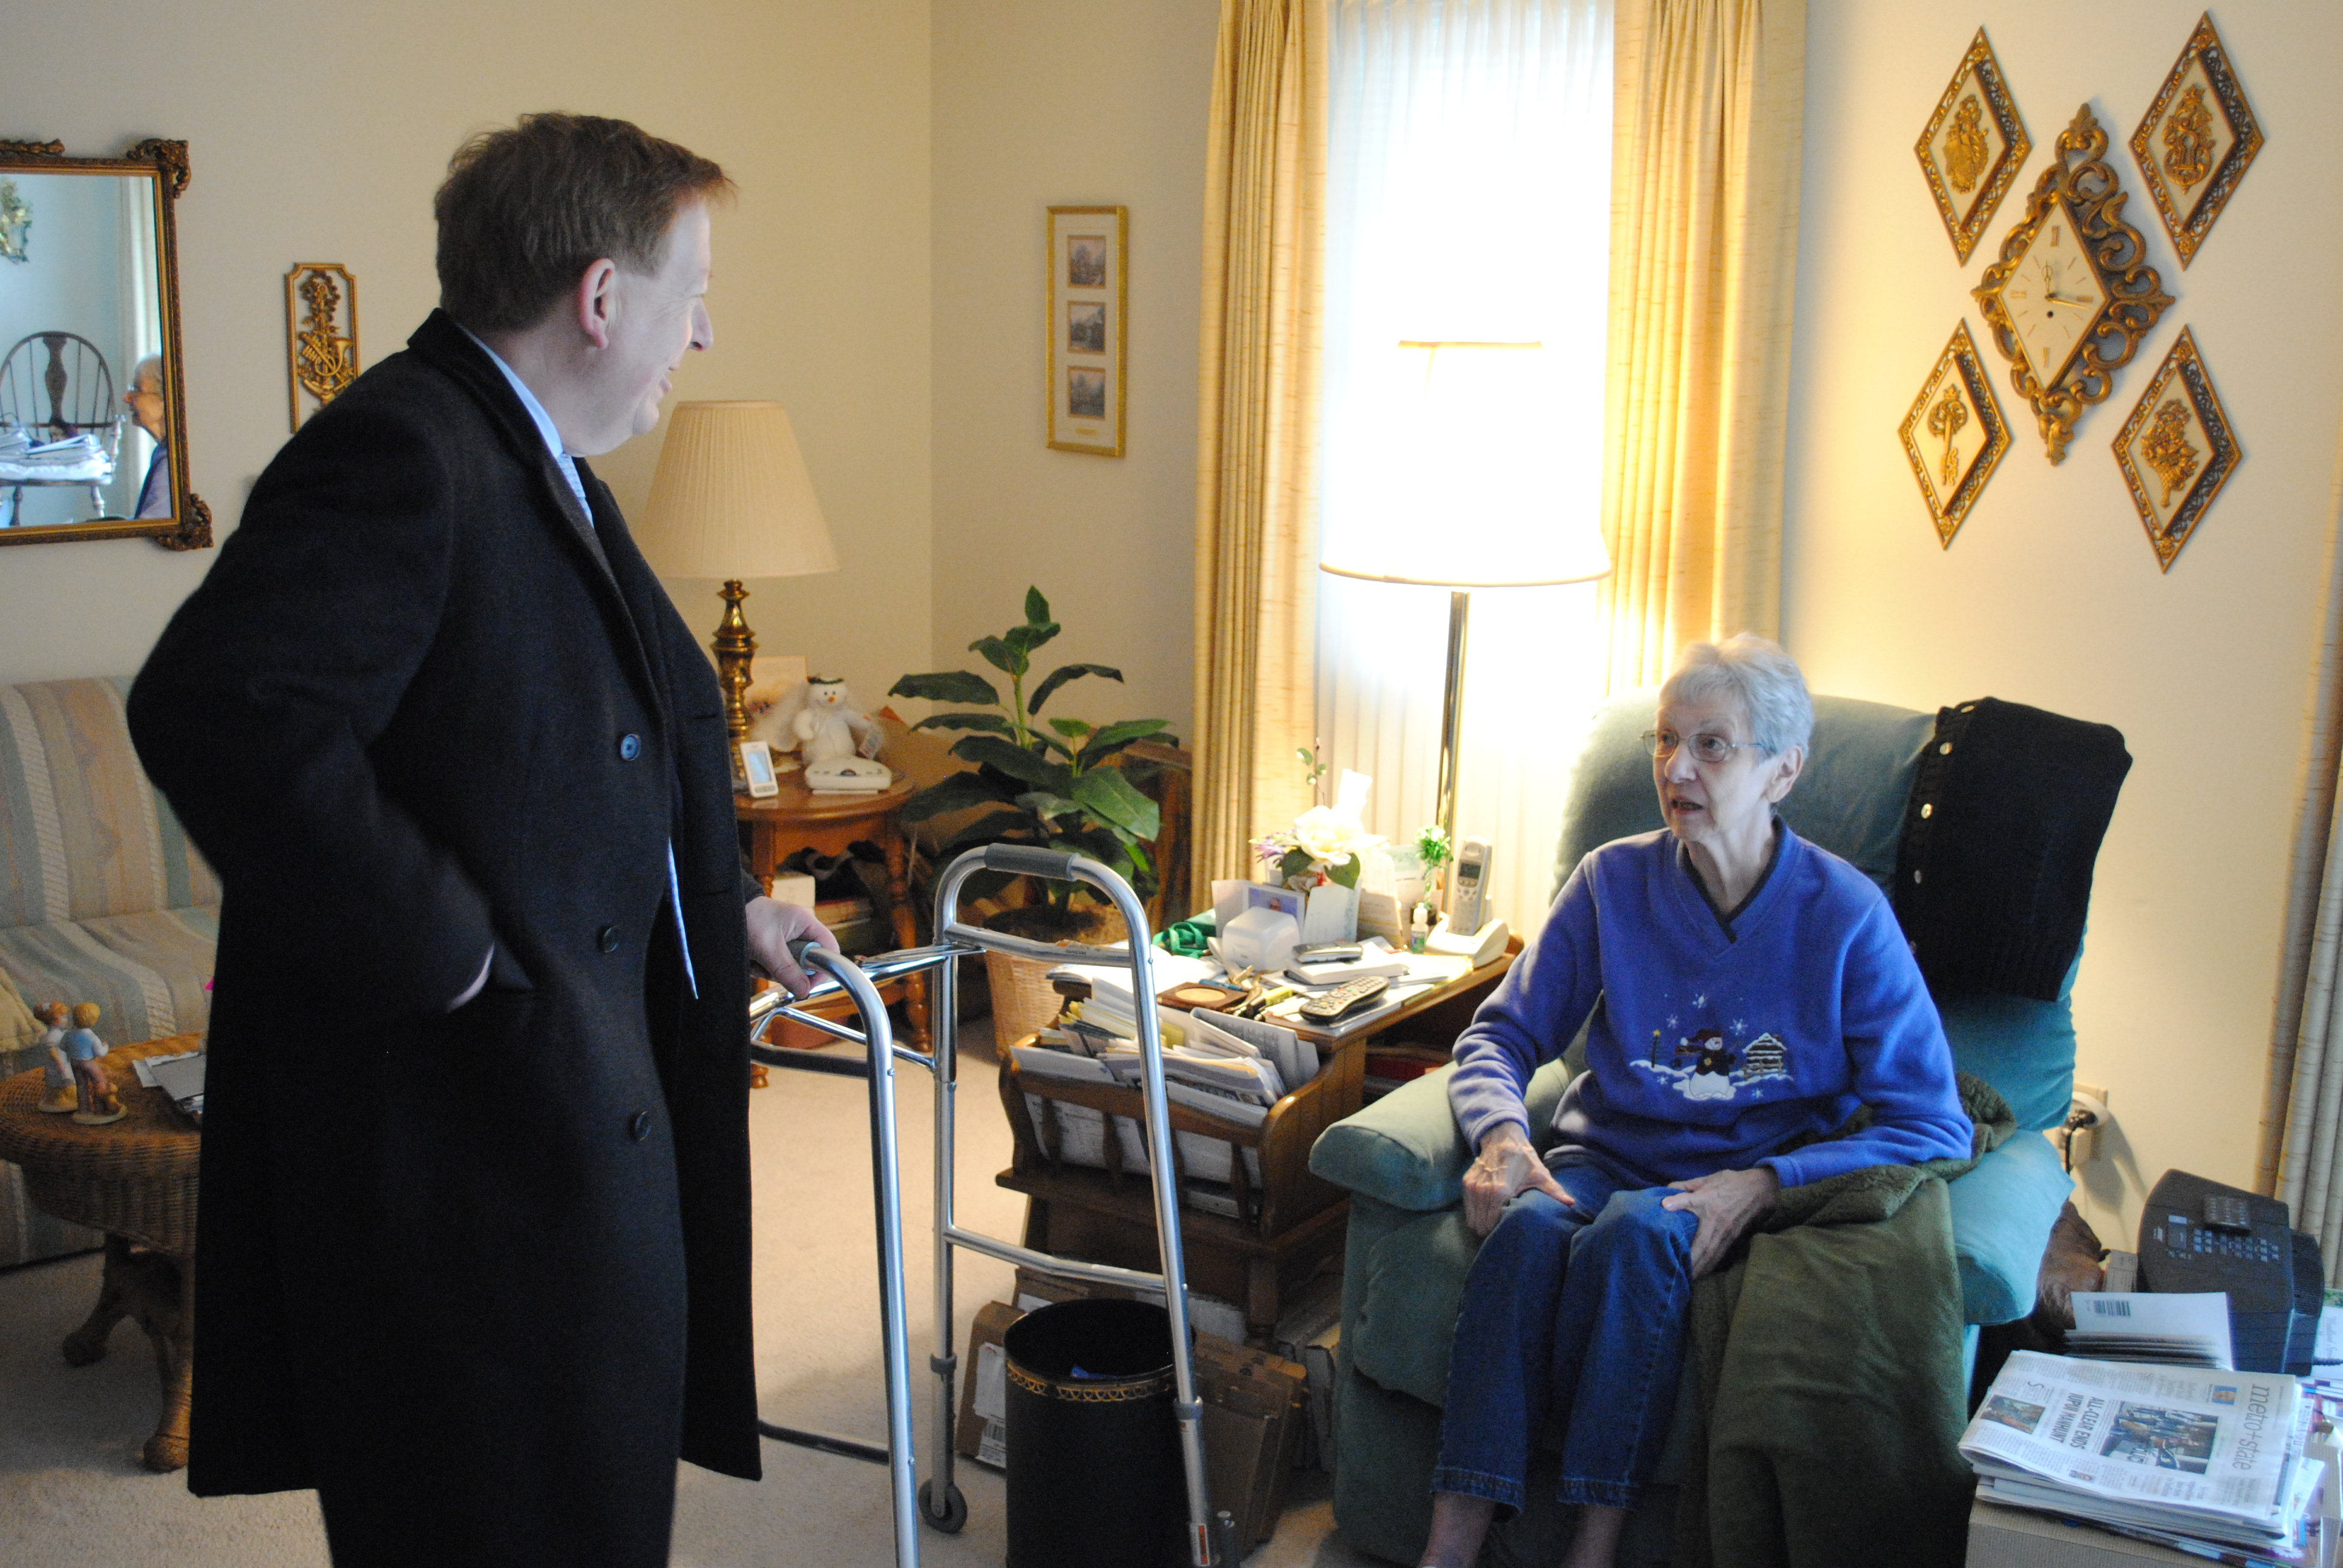 Mary Ann Wilson has lived in Carmel for nine years. Mayor Jim Brainard and Wilson discussed their family backgrounds in Goshen. (Photo by Christian Sorrell)